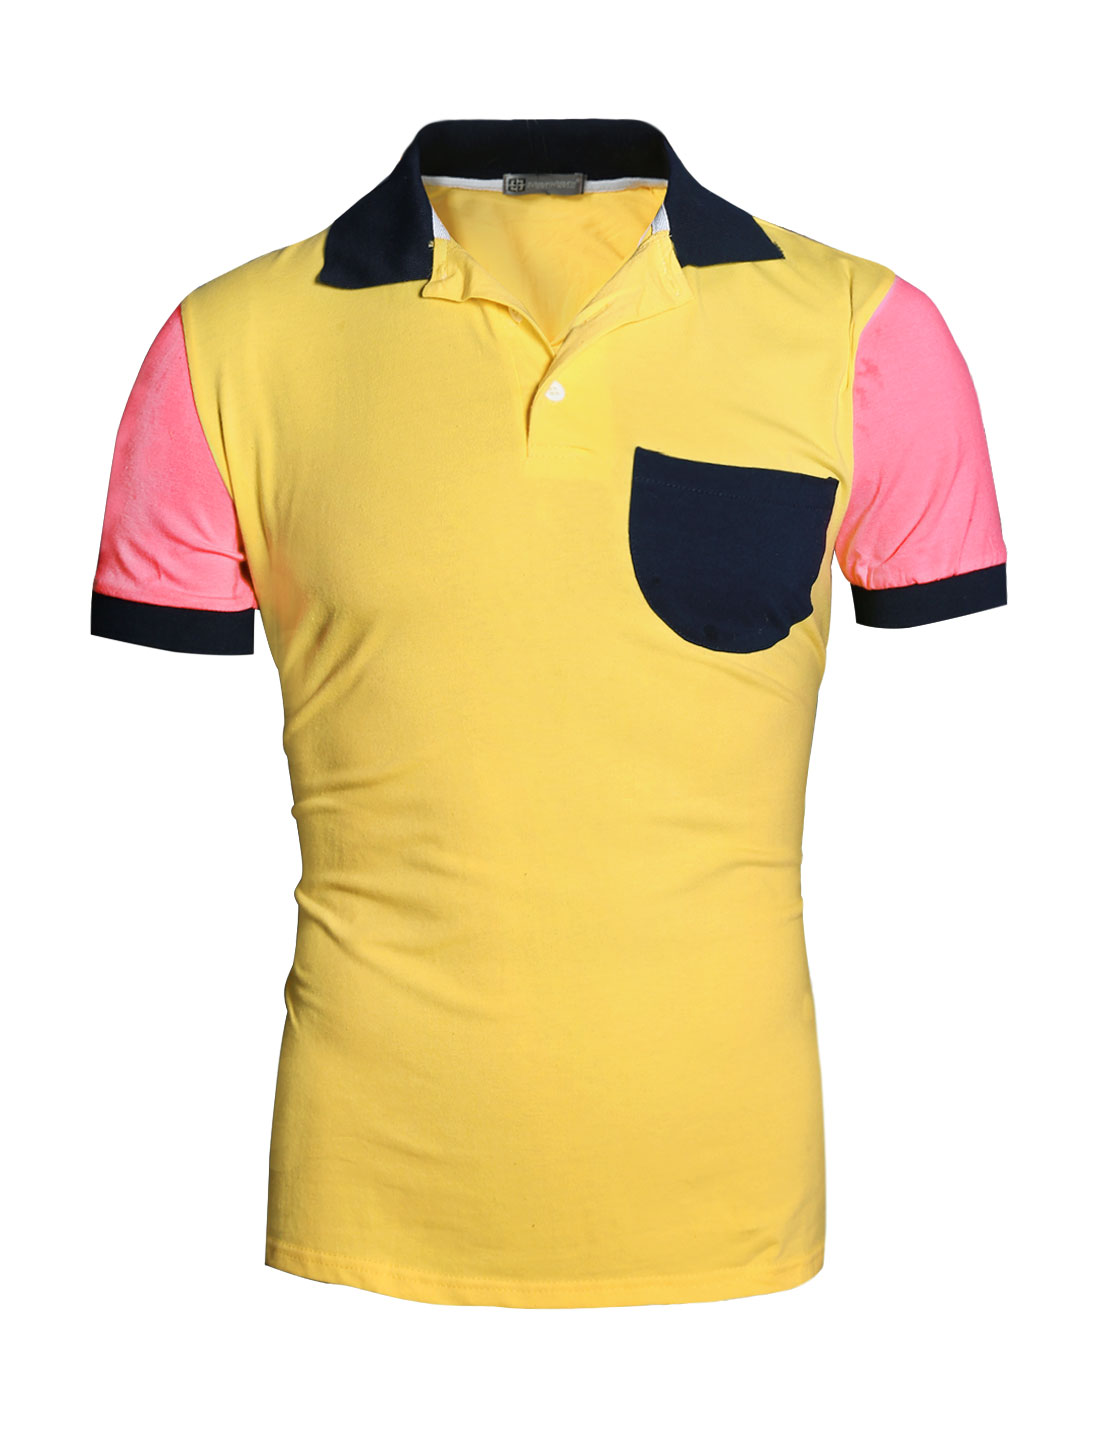 Men Short Sleeve Chest Pocket Contrast Color Polo Shirt Yellow M